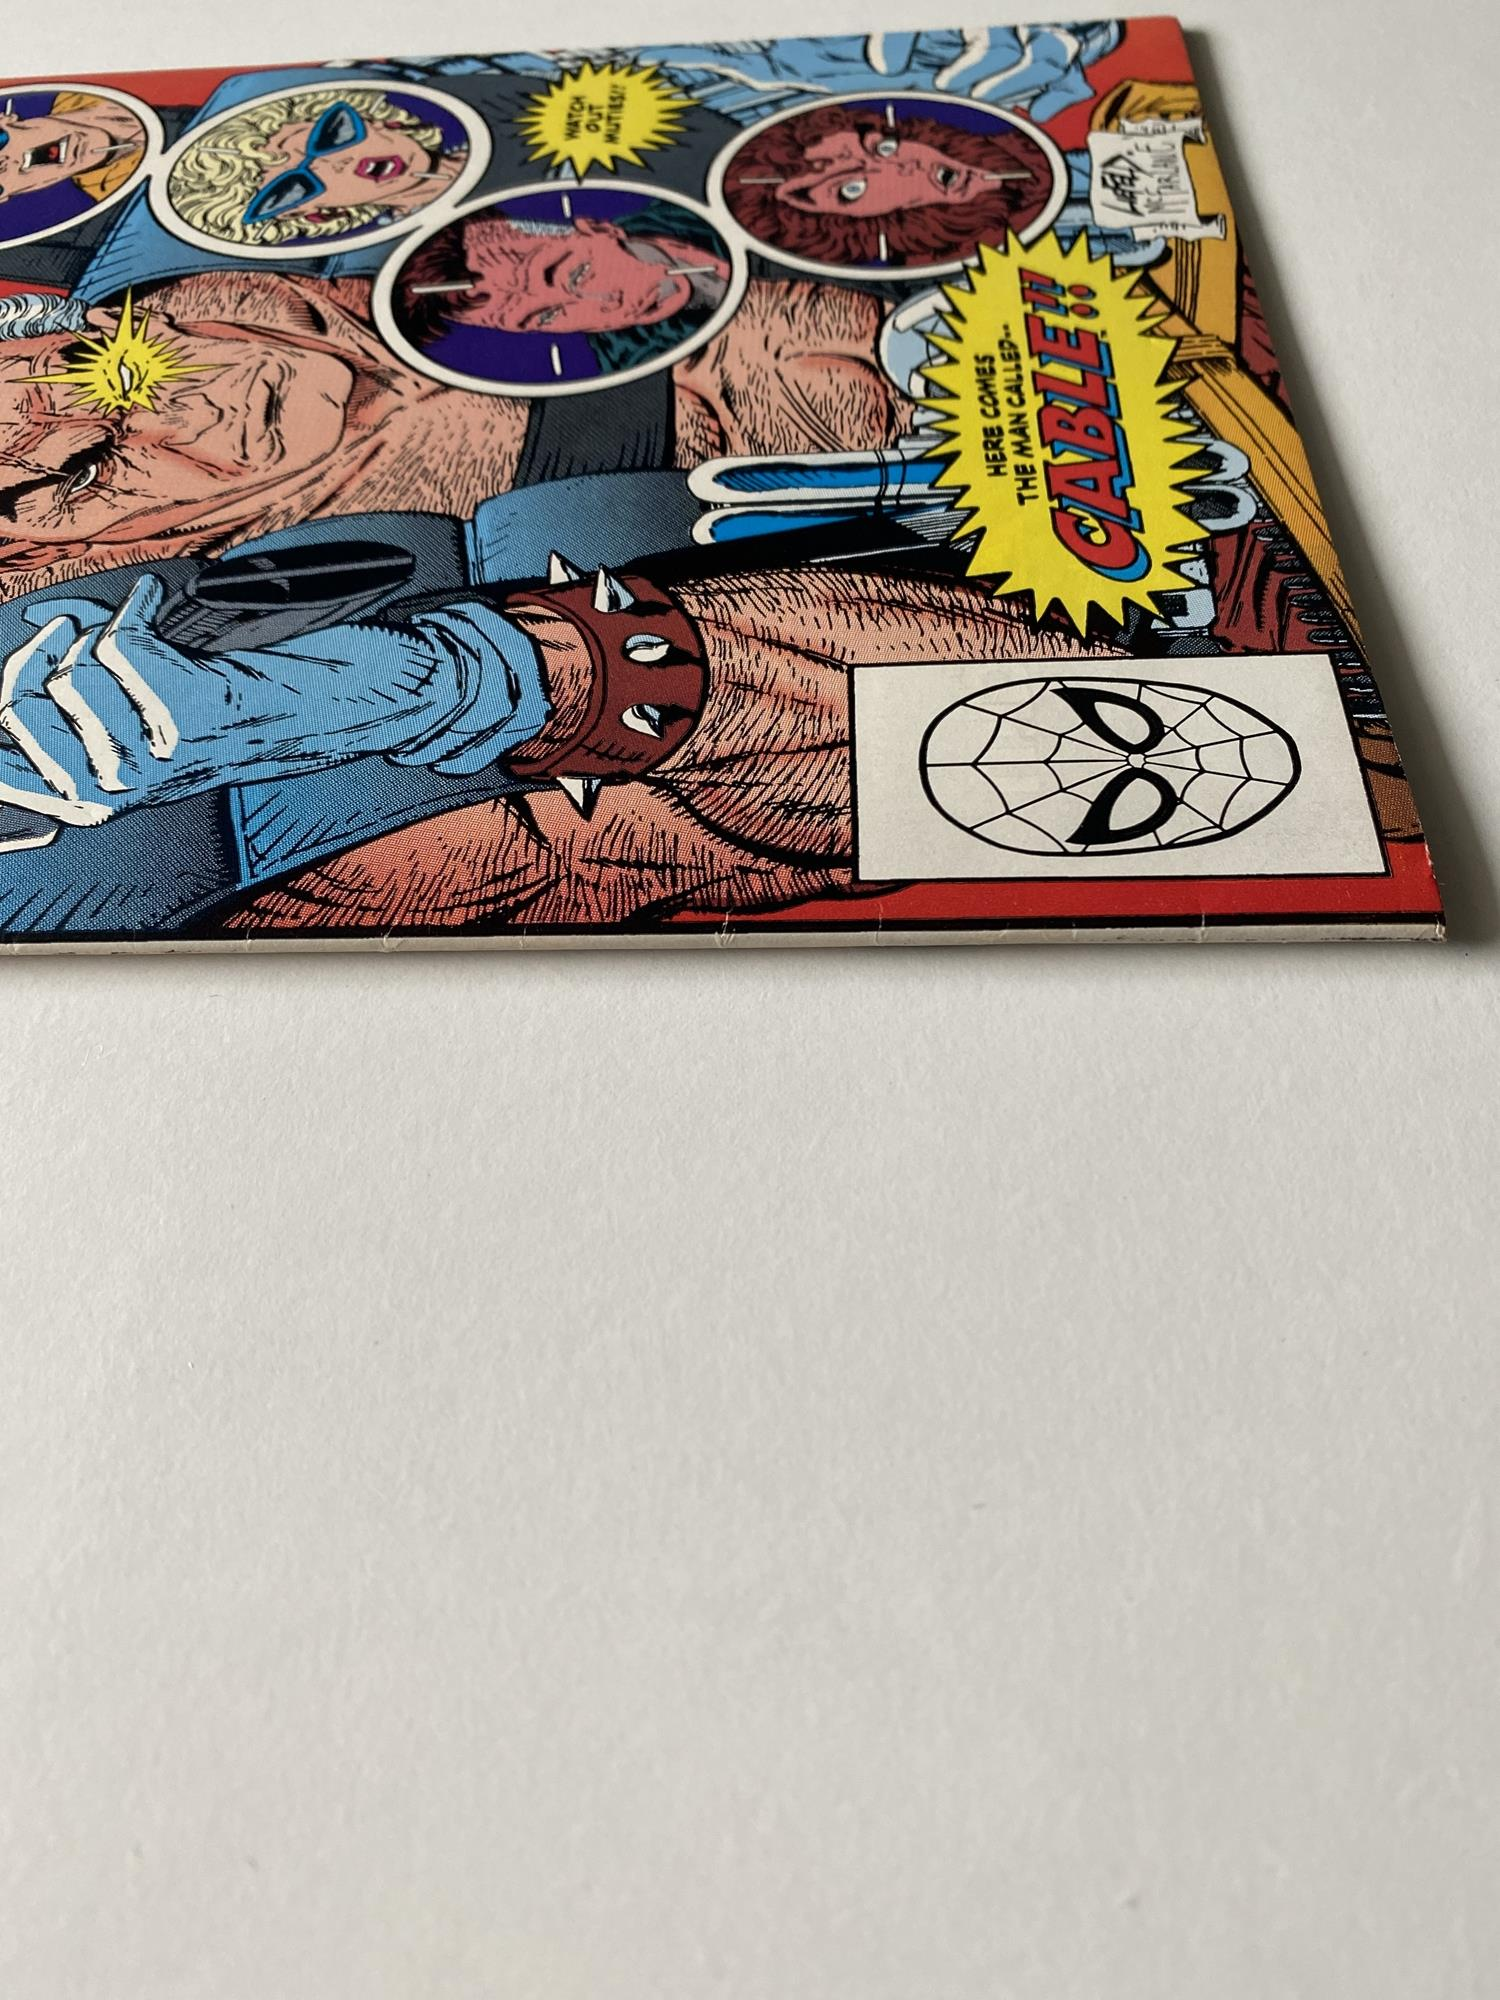 Lot 30 - NEW MUTANTS # 87 (1990 FIRST PRINT - MARVEL - Cents/Pence Copy) - First full appearance of Cable +